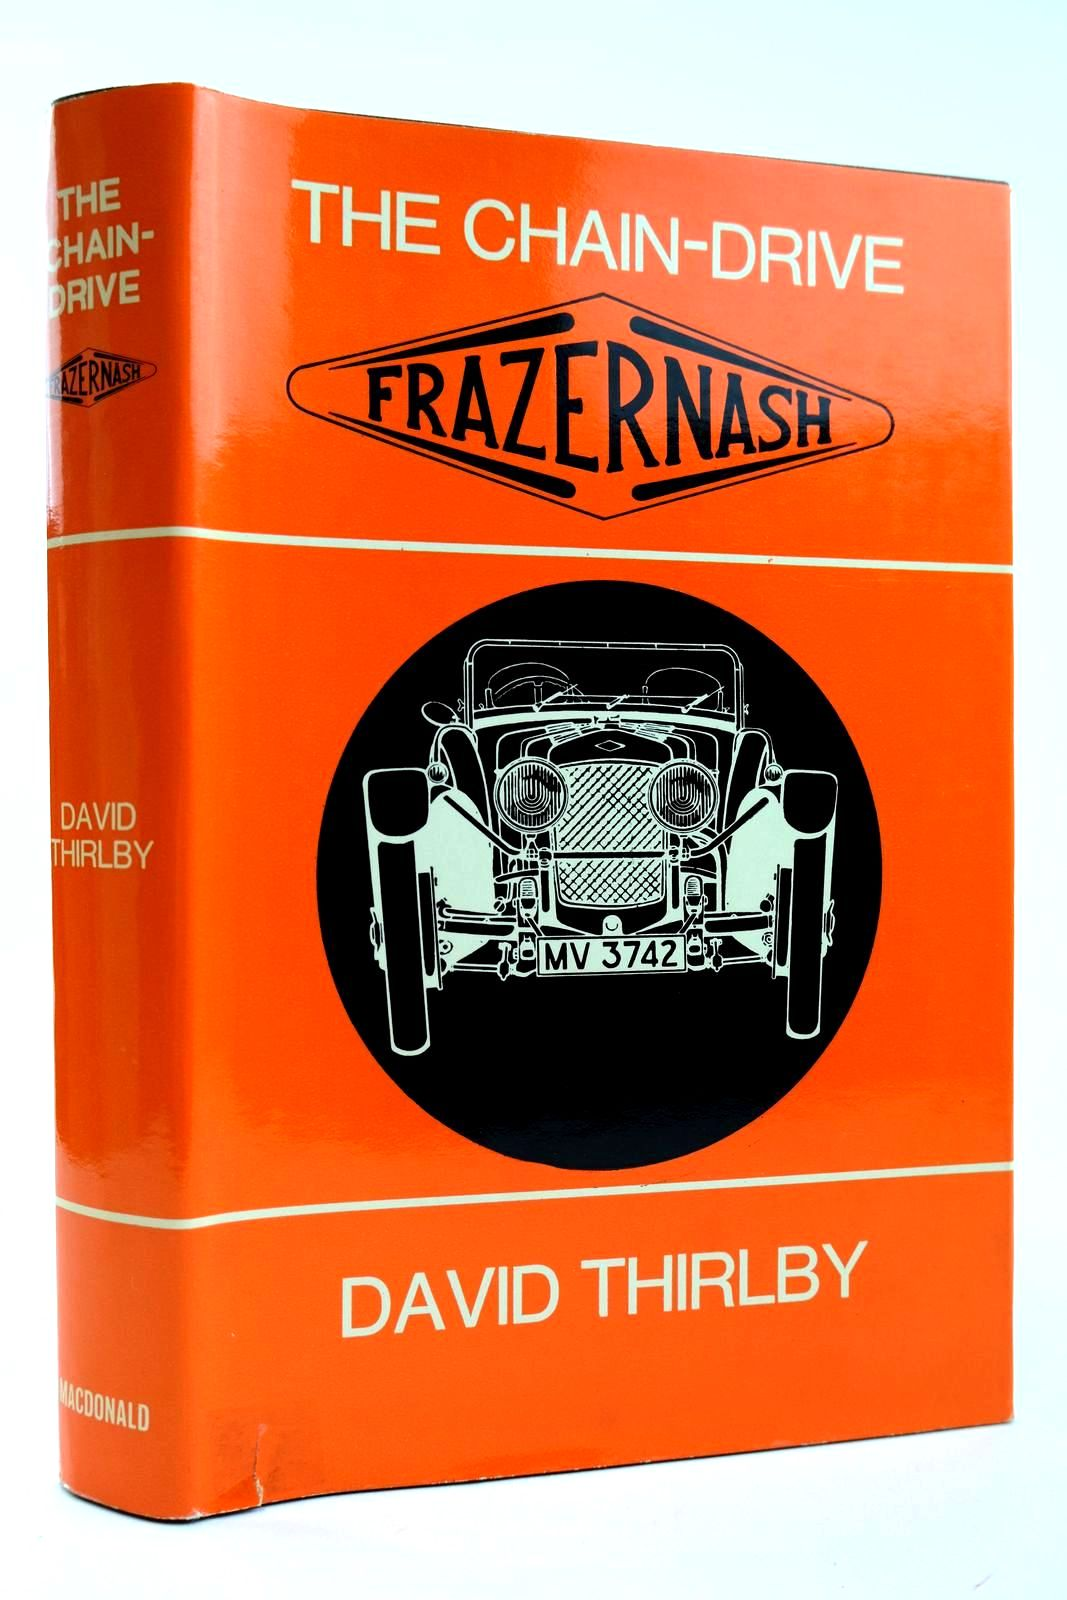 Photo of THE CHAIN-DRIVE FRAZER NASH- Stock Number: 2131933